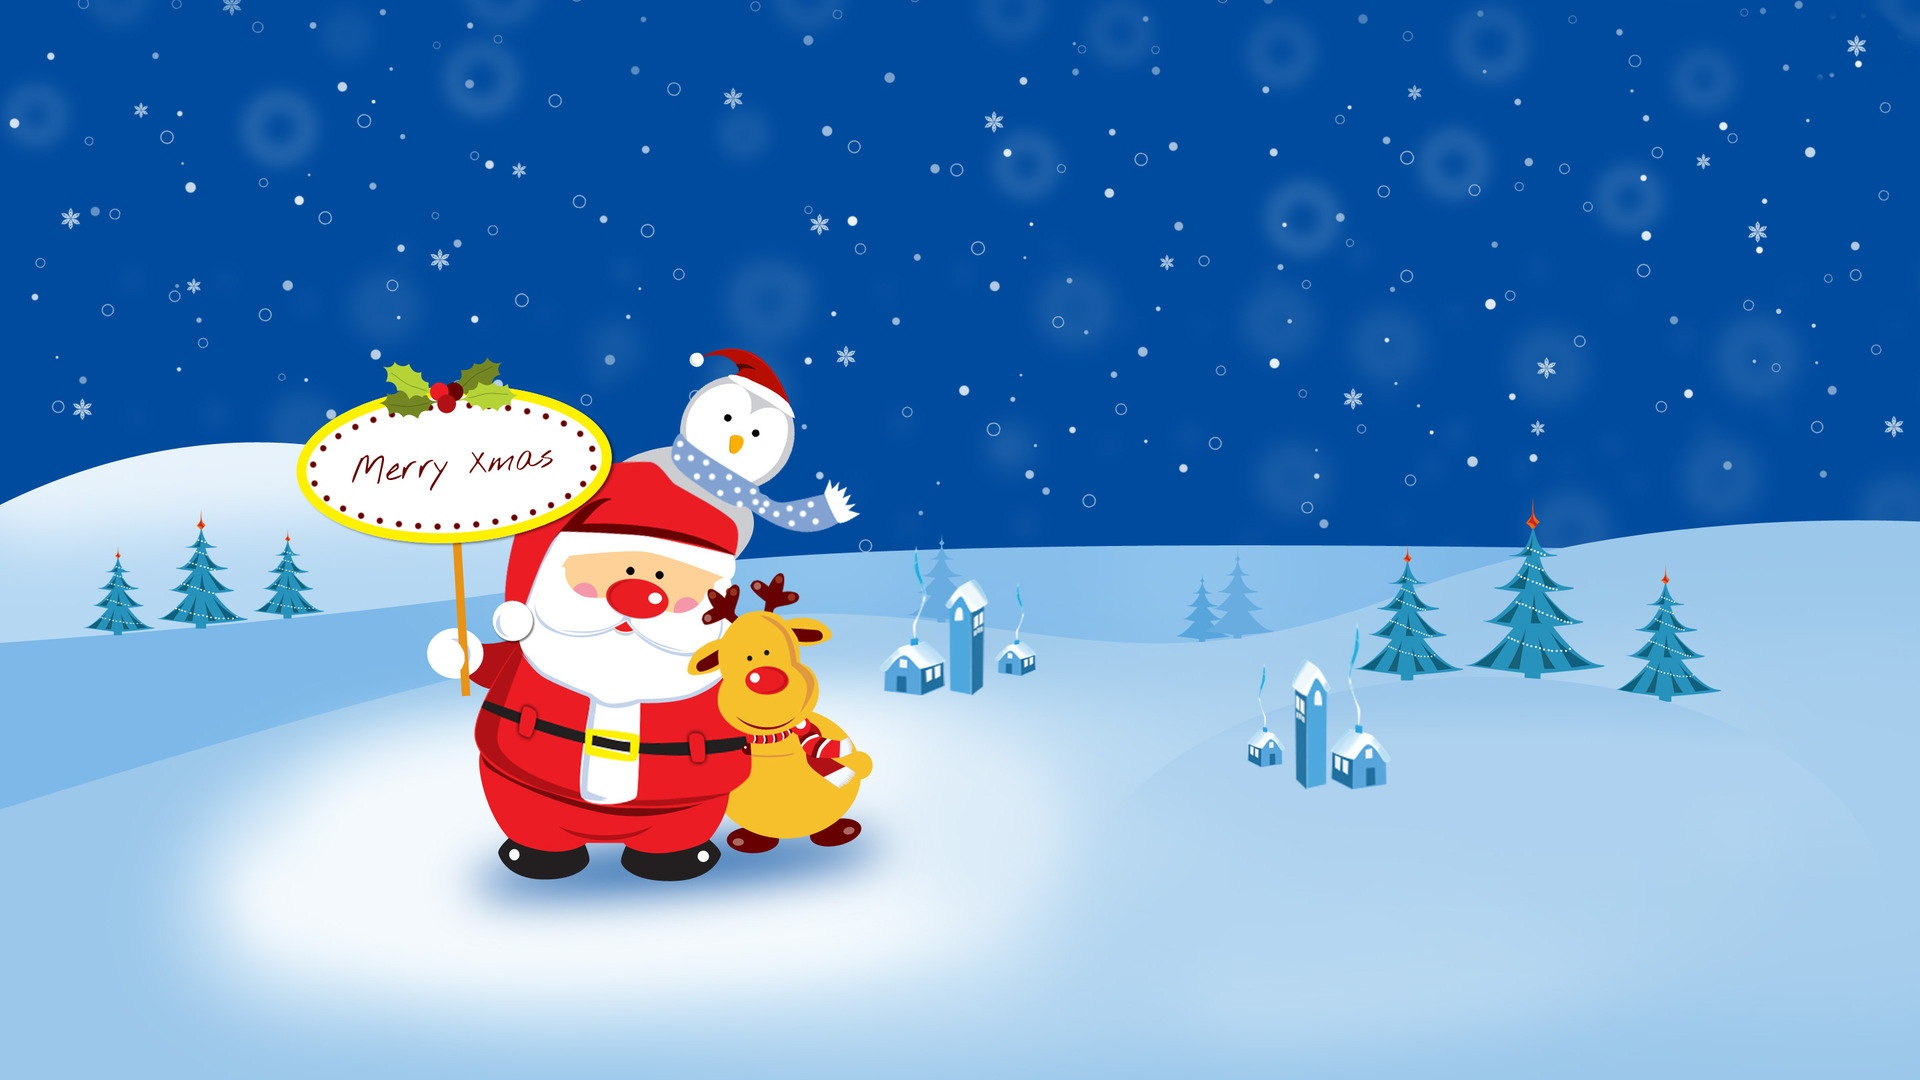 cute cartoon christmas images | Cute Cartoon Christmas Wallpaper